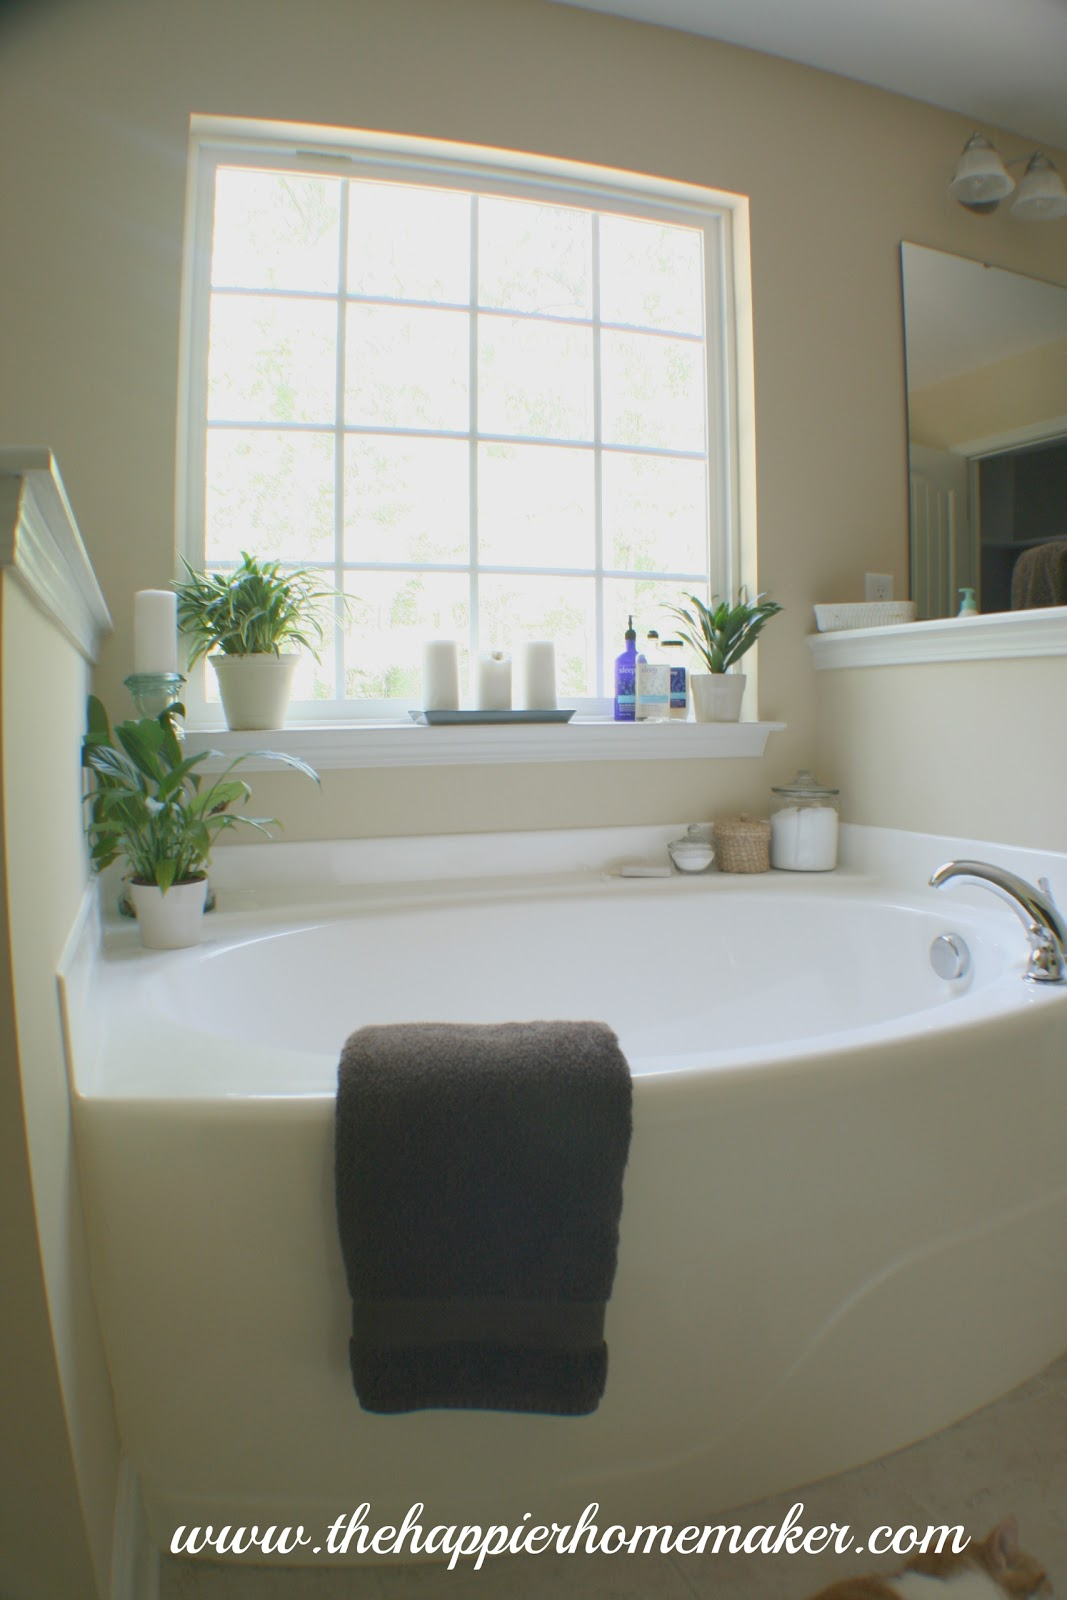 Decorating Around a Bathtub : garden tub decor ideas - www.pureclipart.com